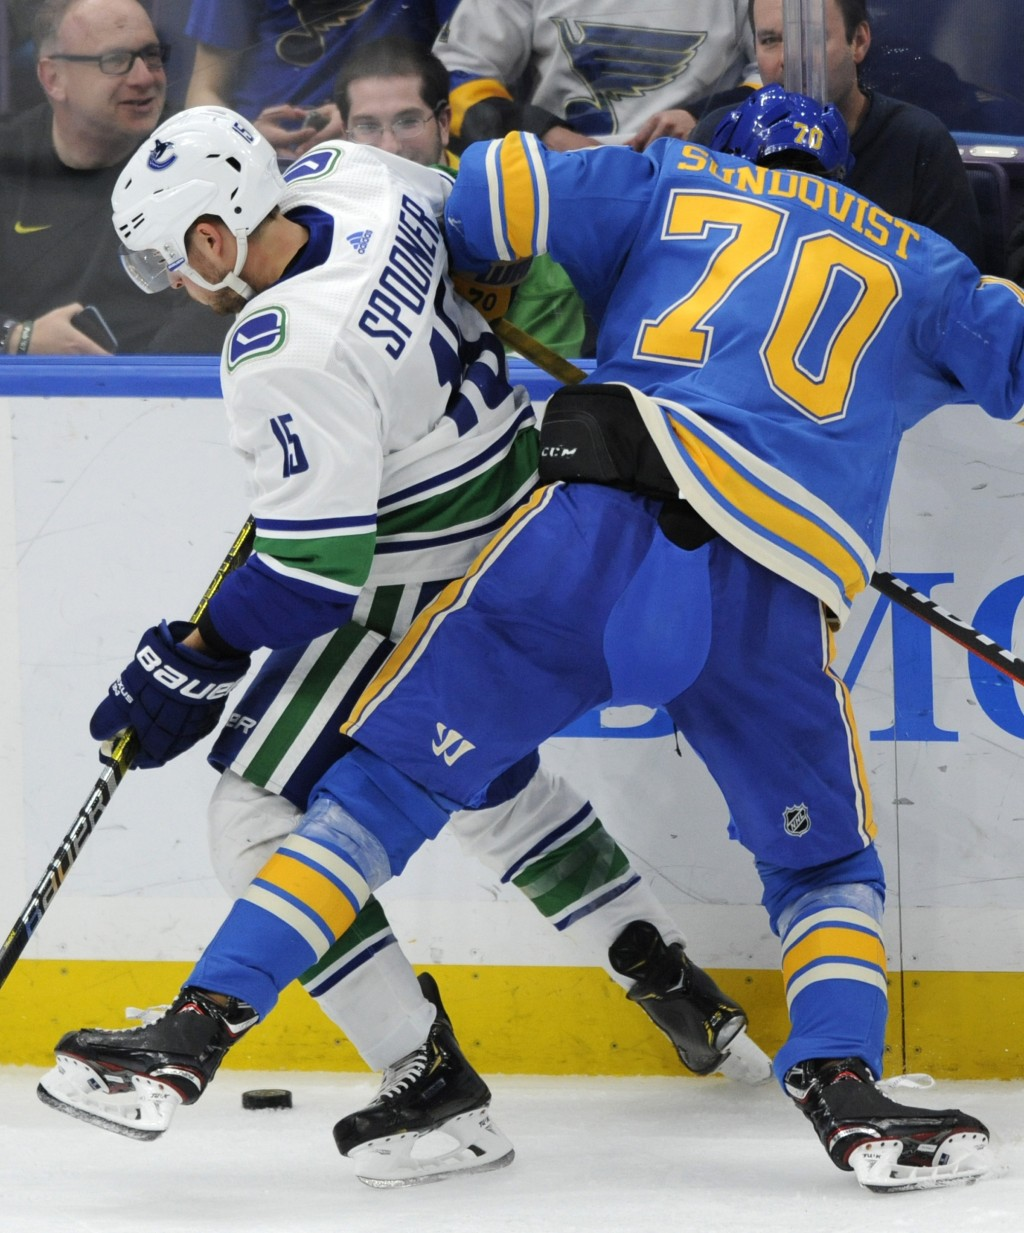 St. Louis Blues' Oskar Sundqvist (70), of Sweden, looks for the puck with Vancouver Canucks' Ryan Spooner (15) during the second period of an NHL hock